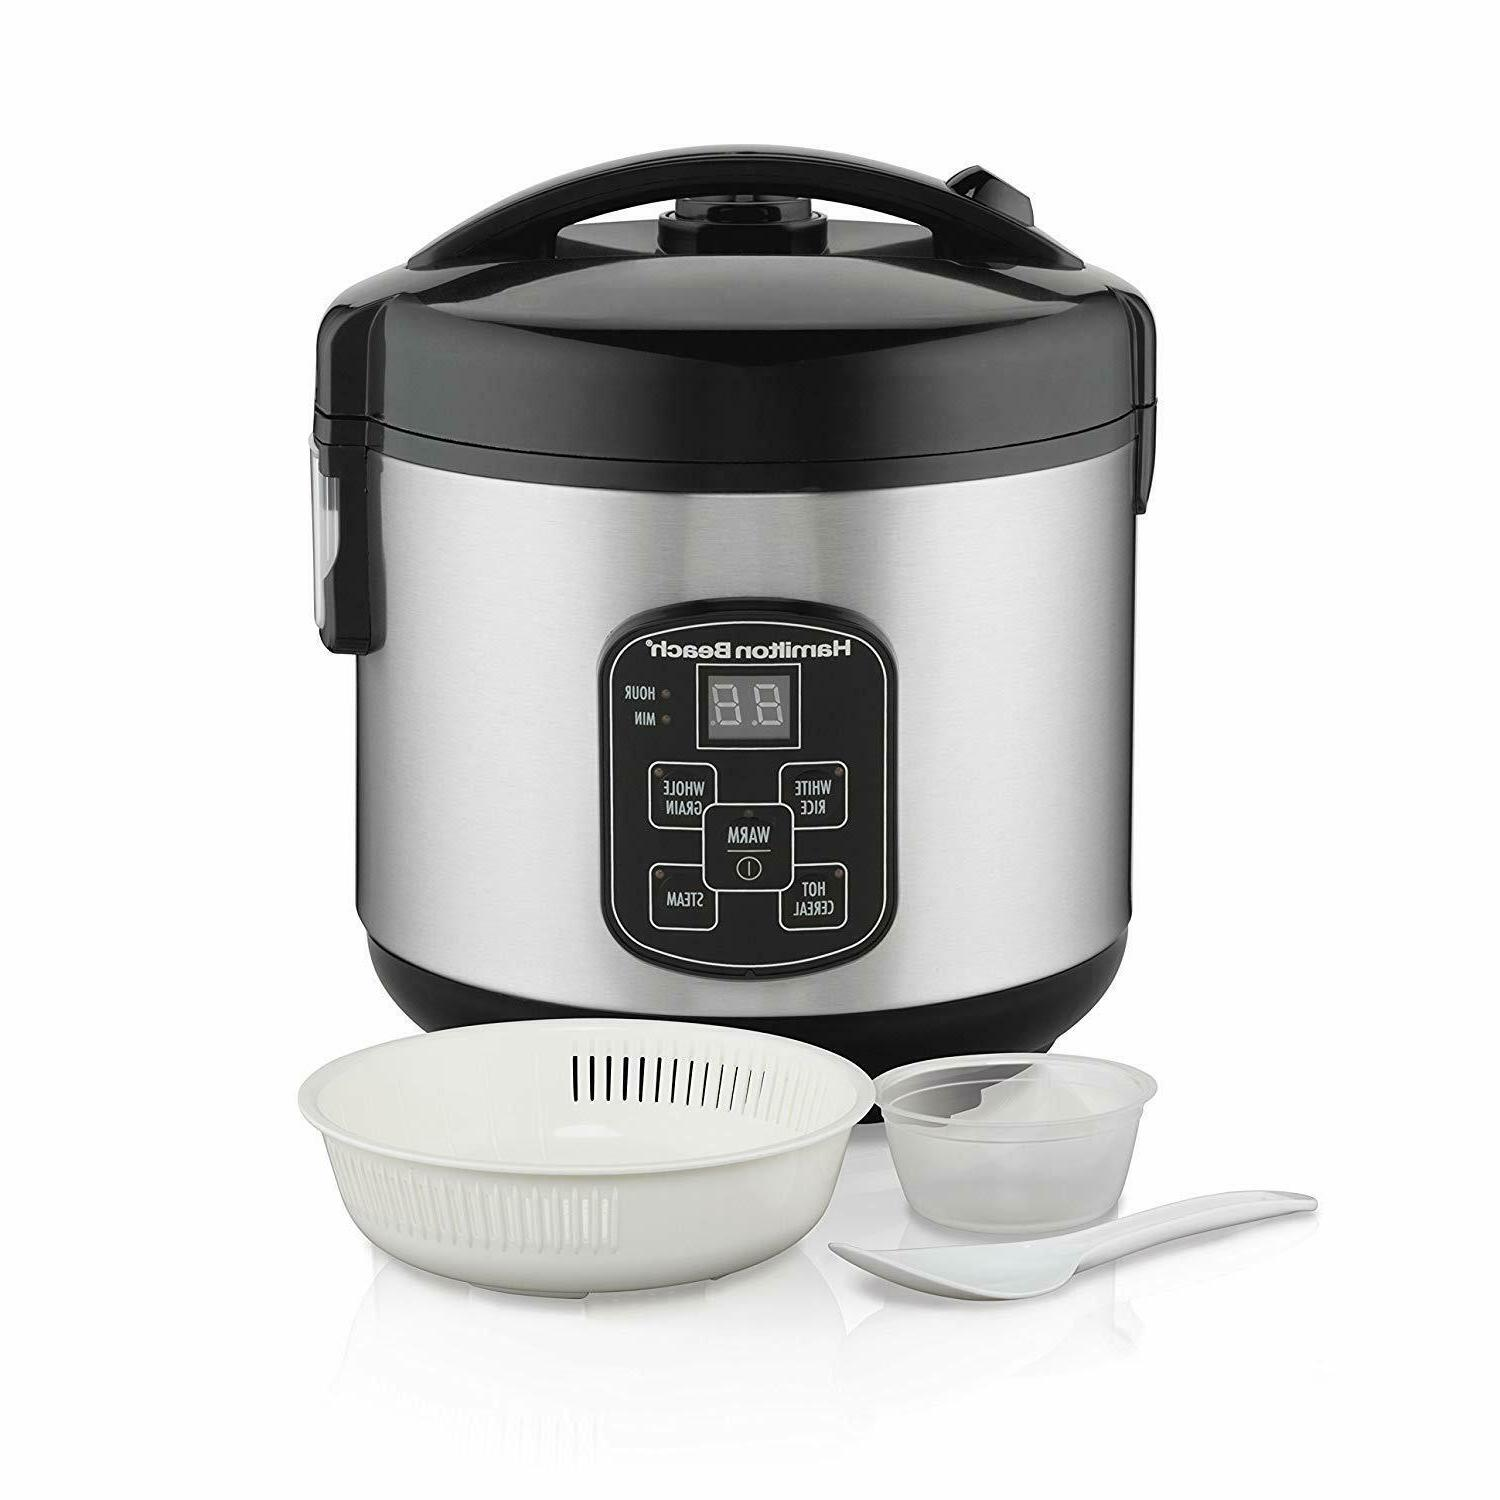 Hamilton Beach Rice Cooker, 8 Cups Cooked With